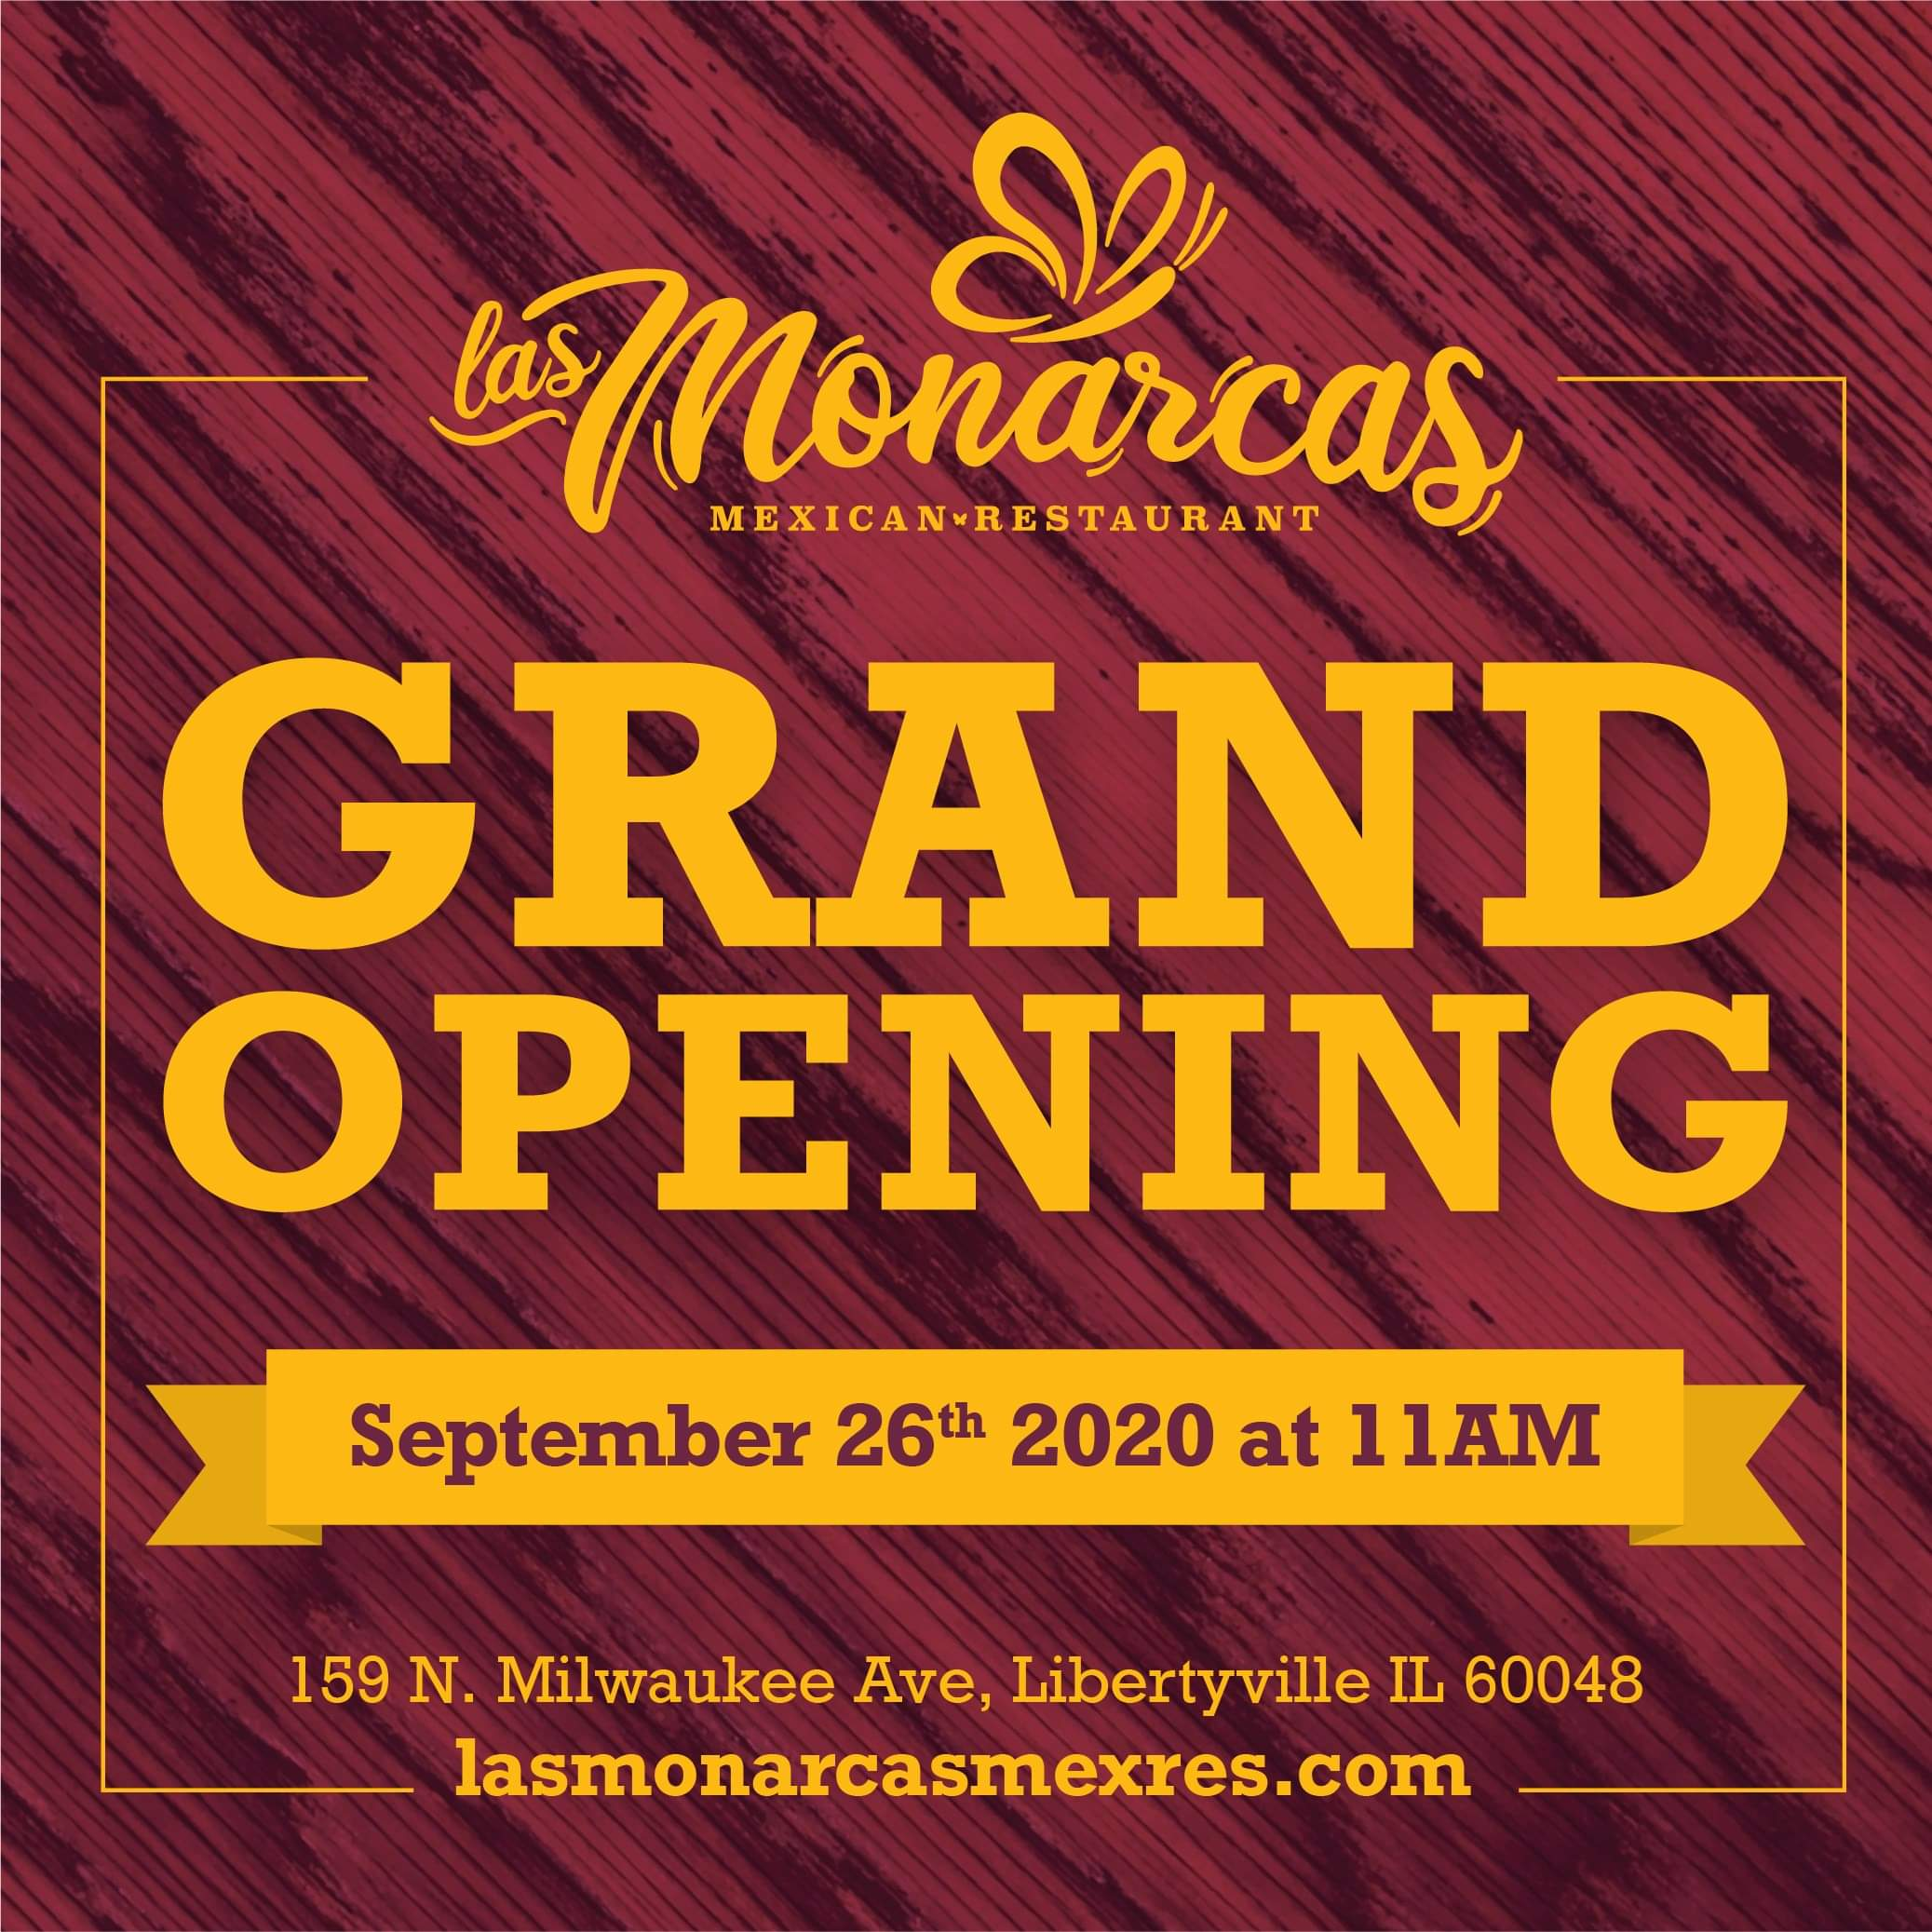 grand opening announcement for Las Monarcas